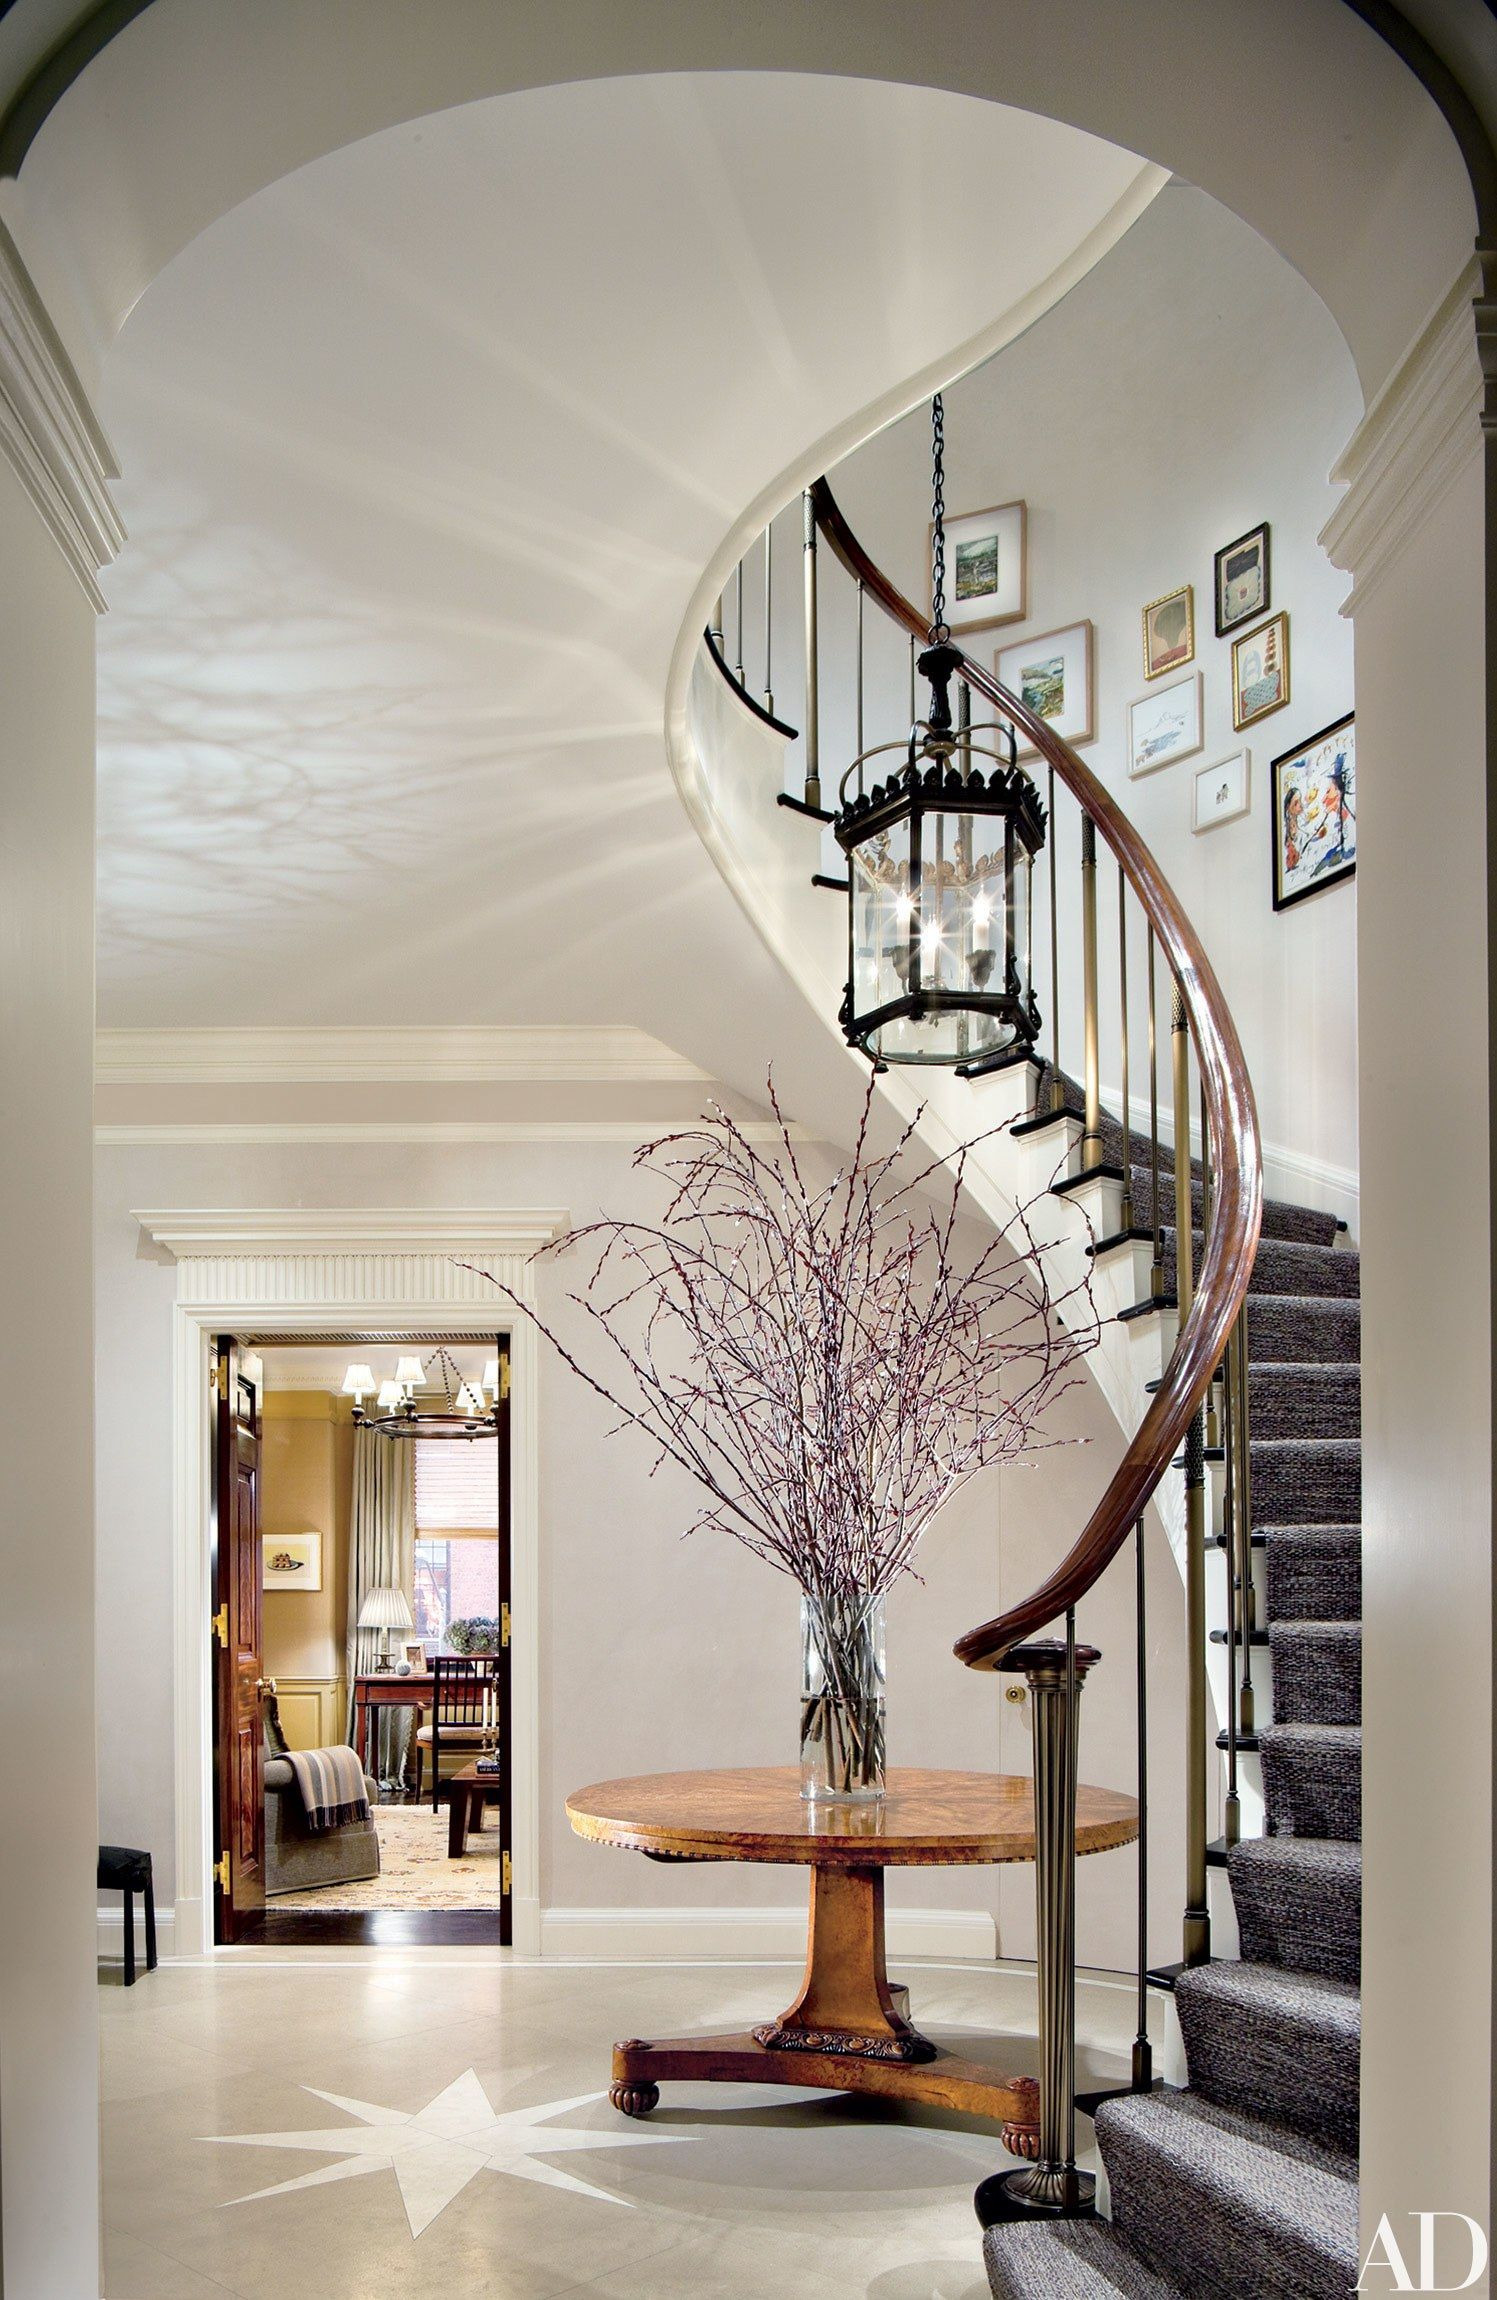 Duplex House Inside Images Best Of 9 Rooms Inside Of Ad S Most Stunning Duplex Apartments